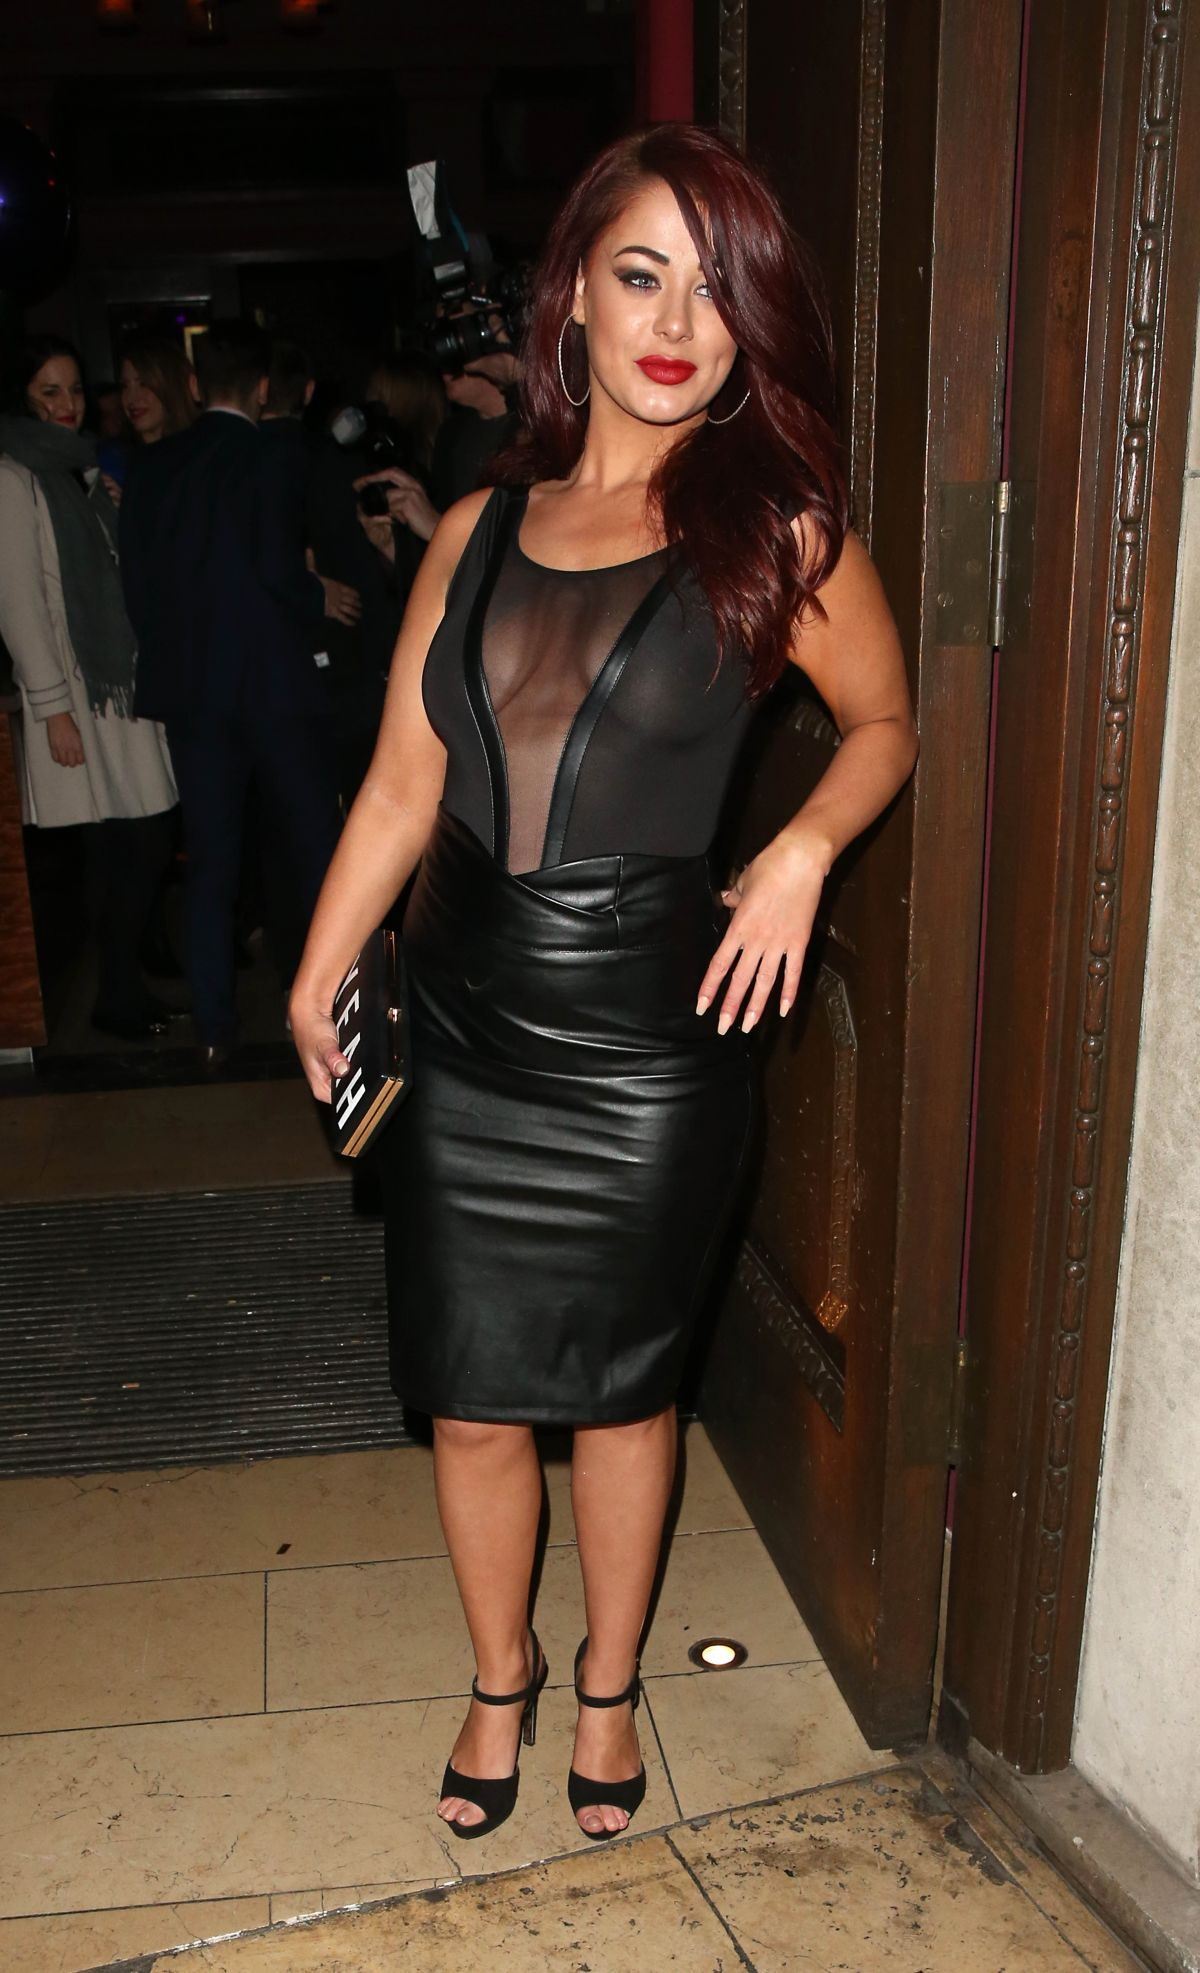 JESSICA HAYES at Steam & Rye Club in London 01/28/2016